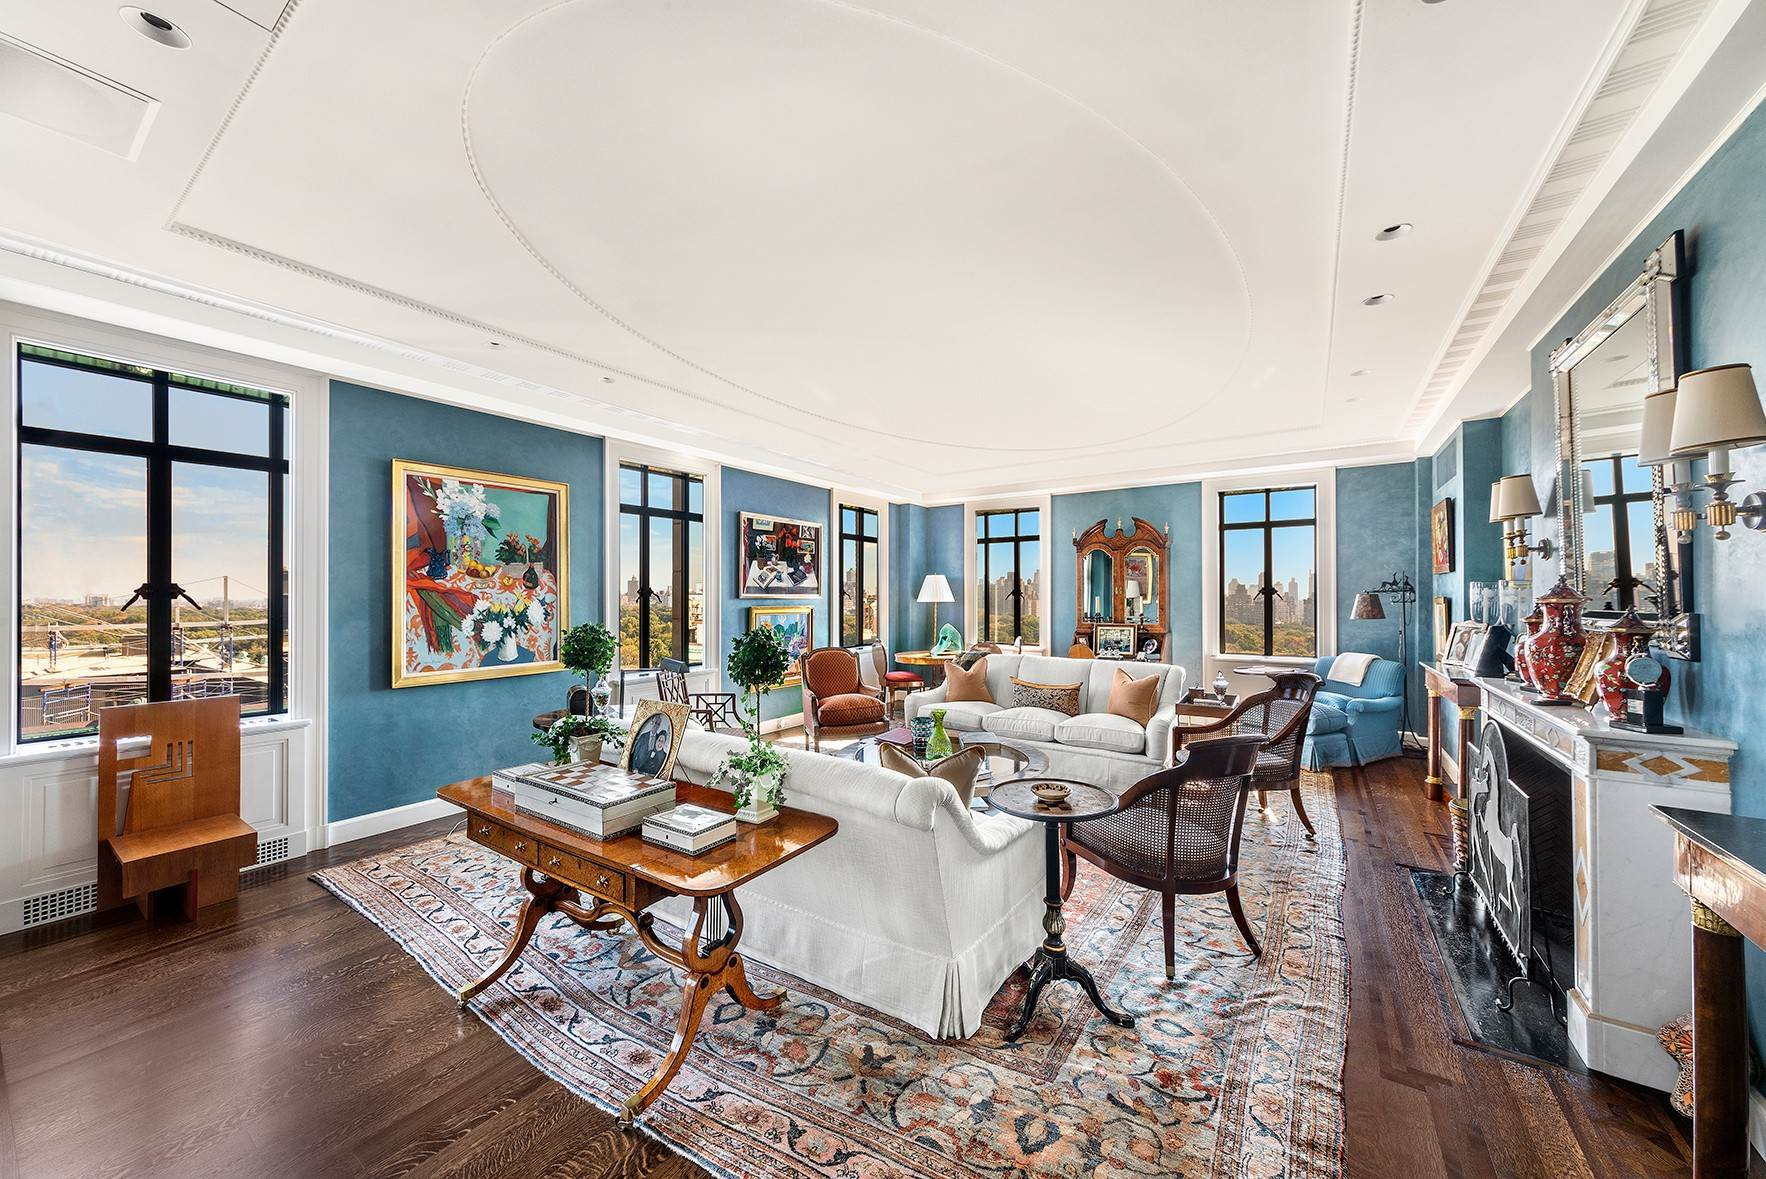 Co-op property for Sale at San Remo 145-146 Central Park West, 15EF New York, New York,10023 United States